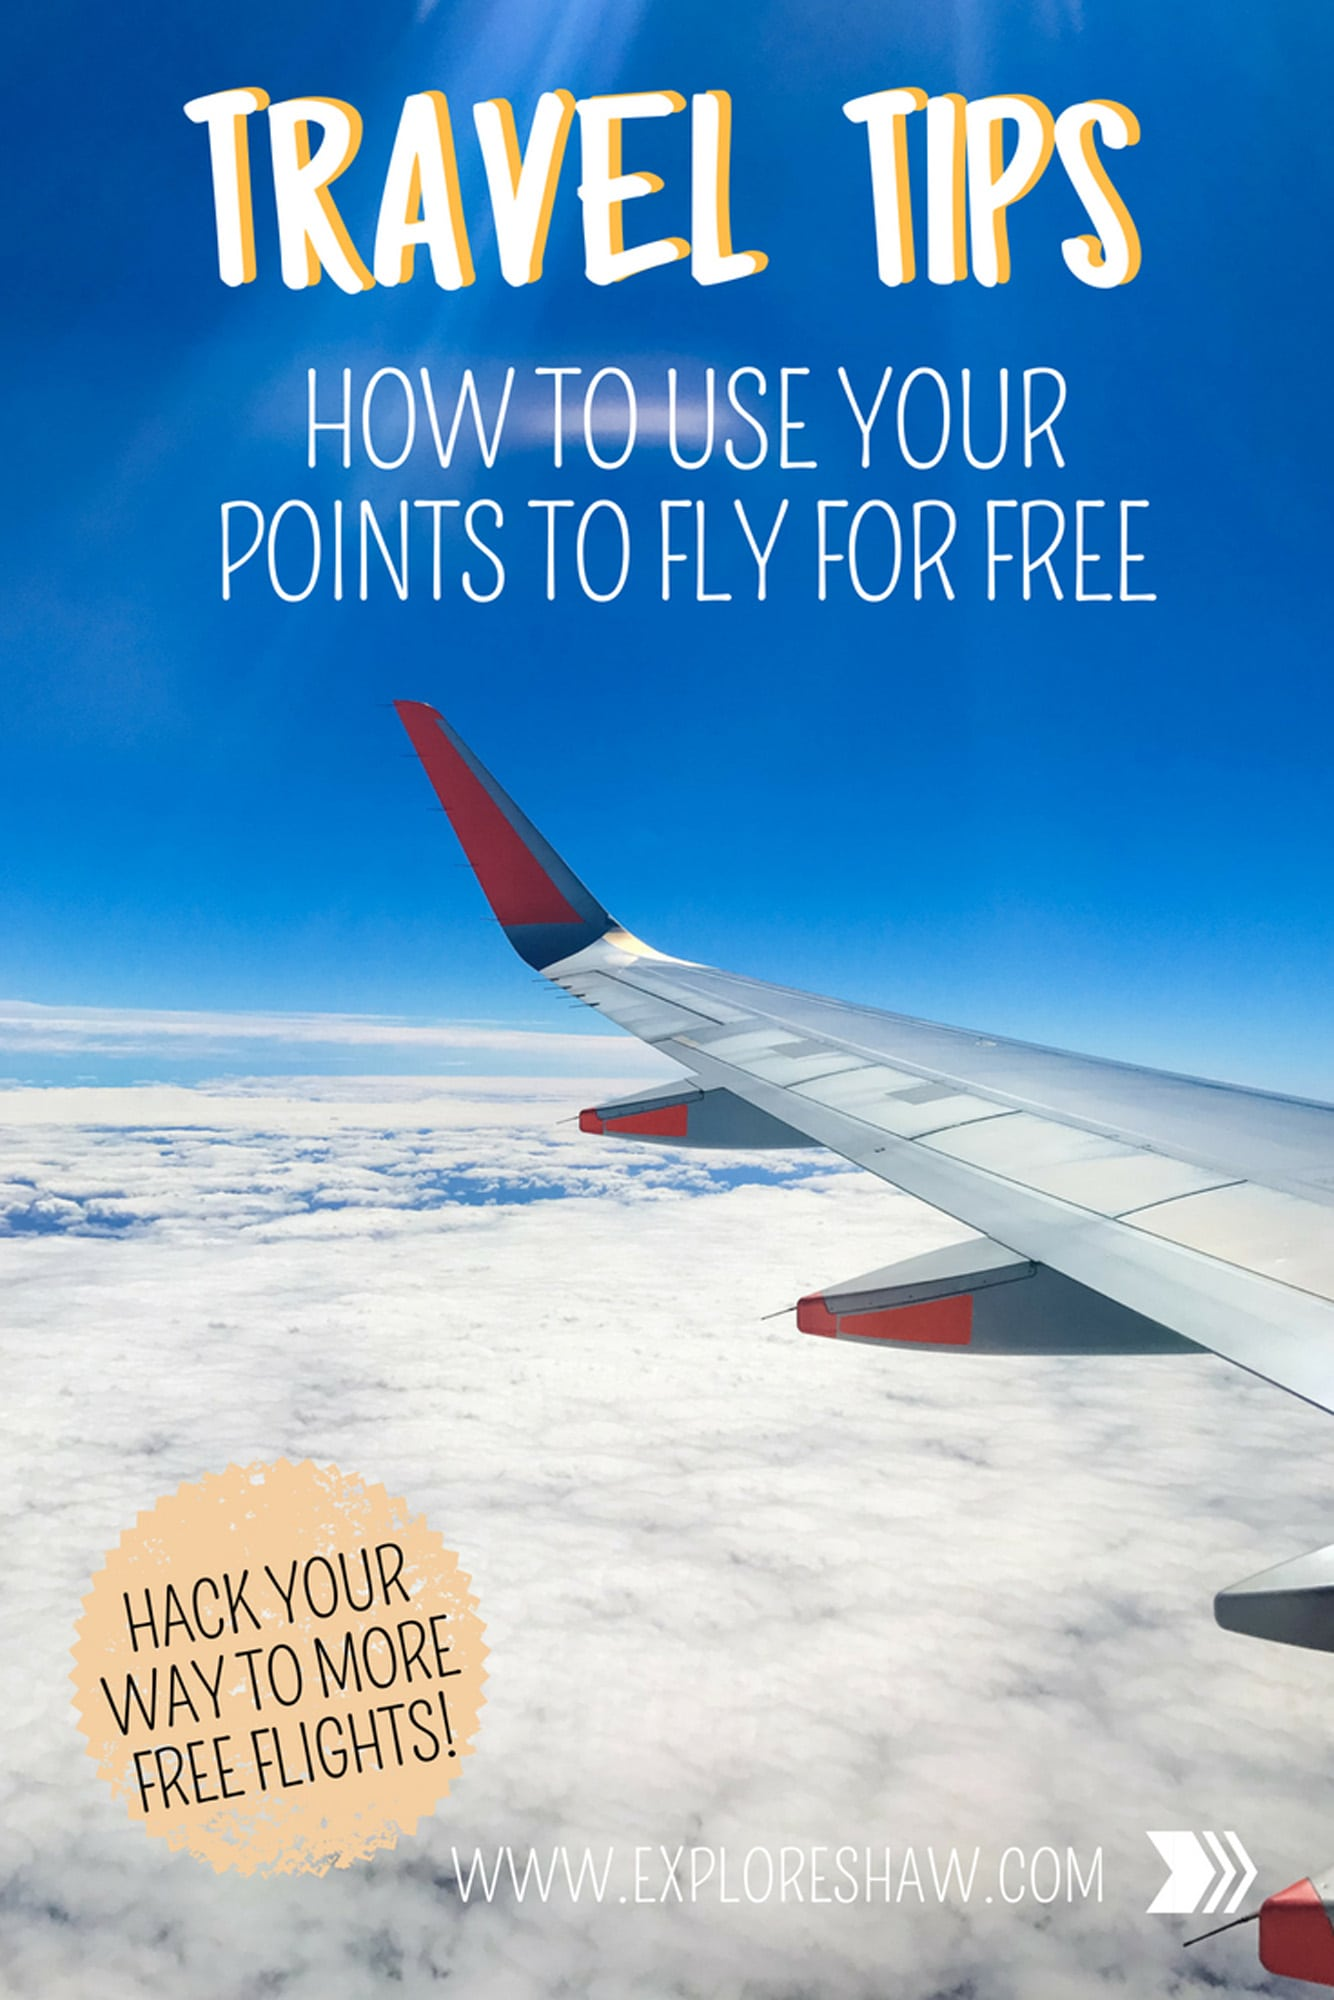 HOW TO USE YOUR POINTS TO FLY FOR FREE